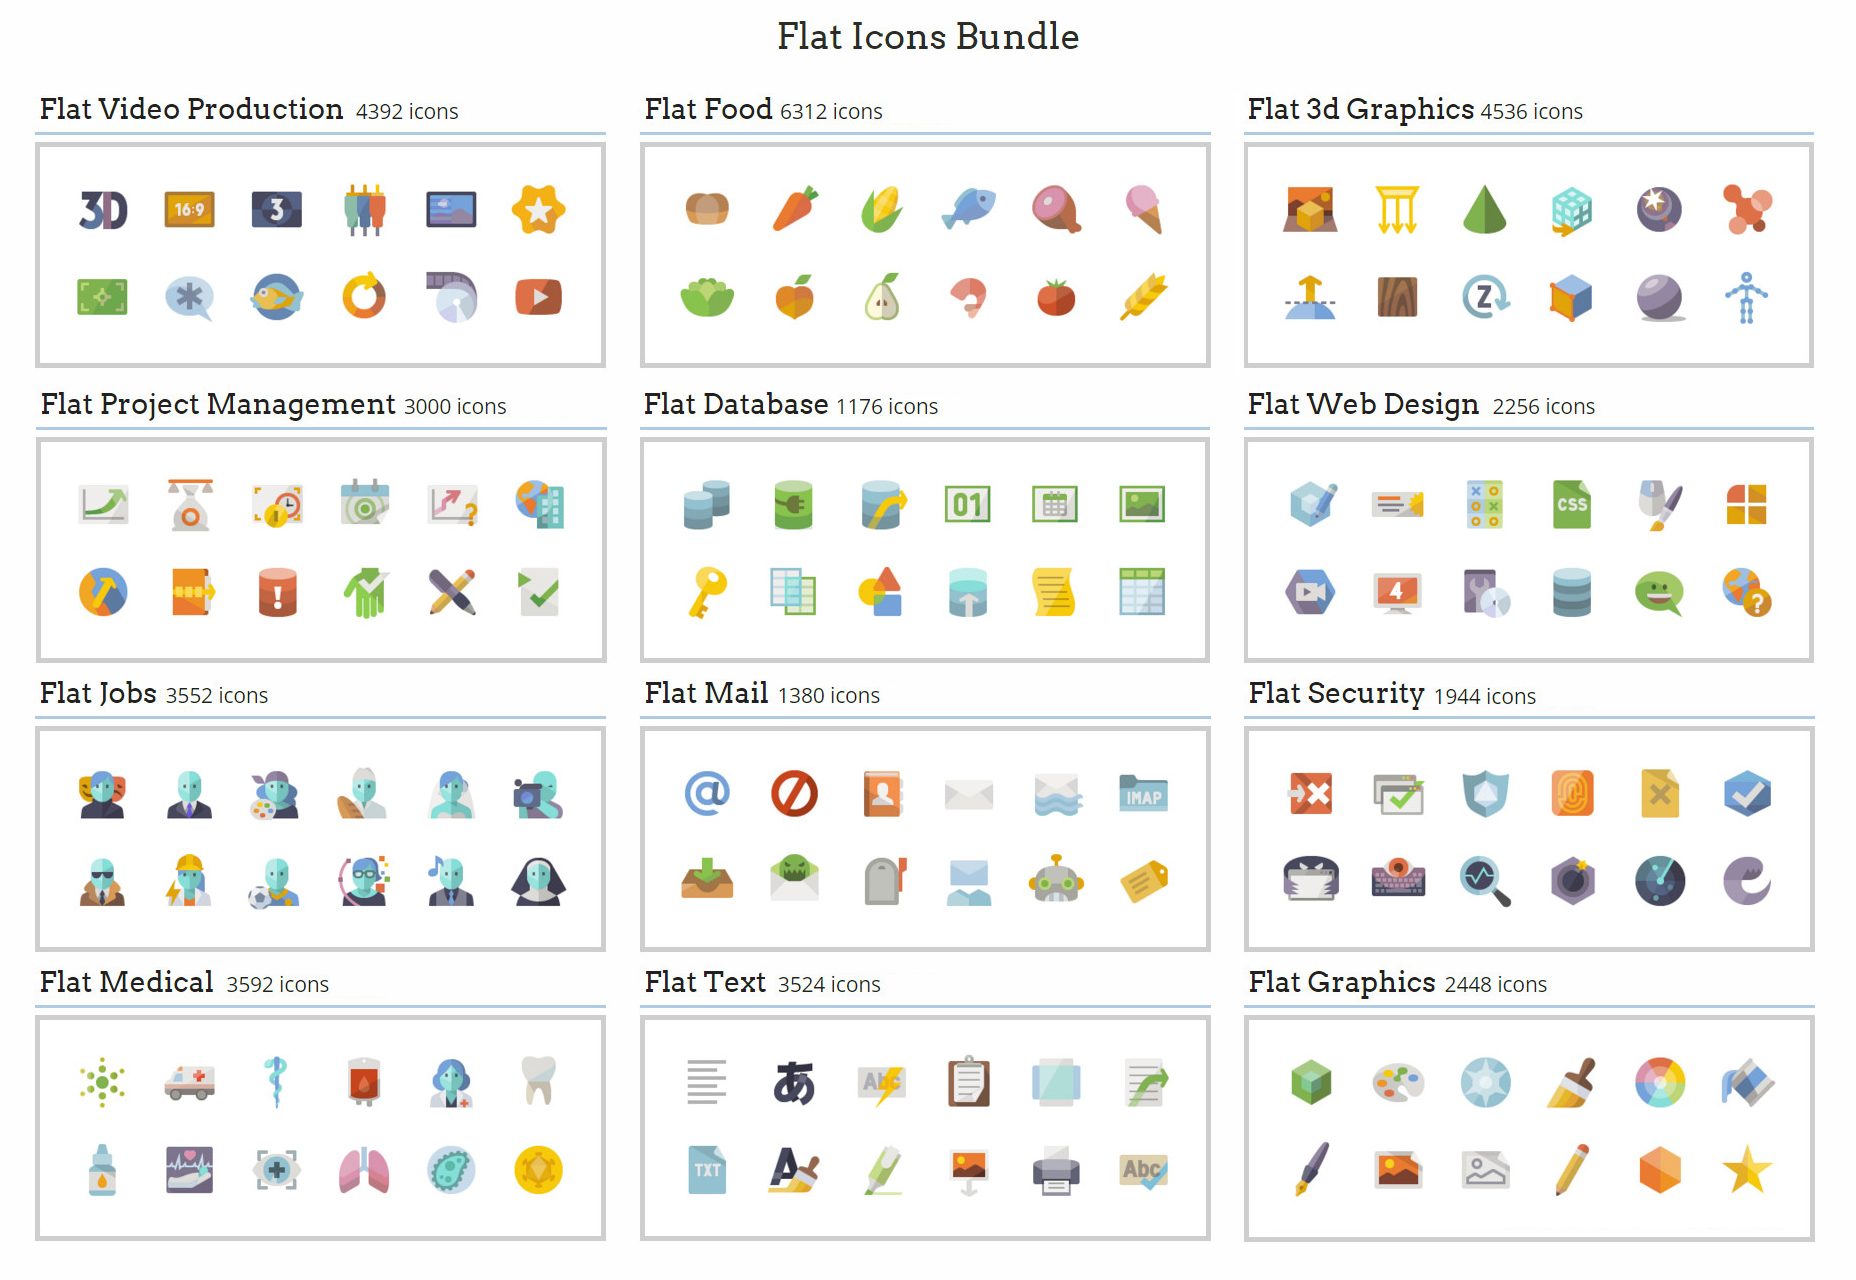 A Massive Bundle of Several Flat Icons (Over 56k in Total)